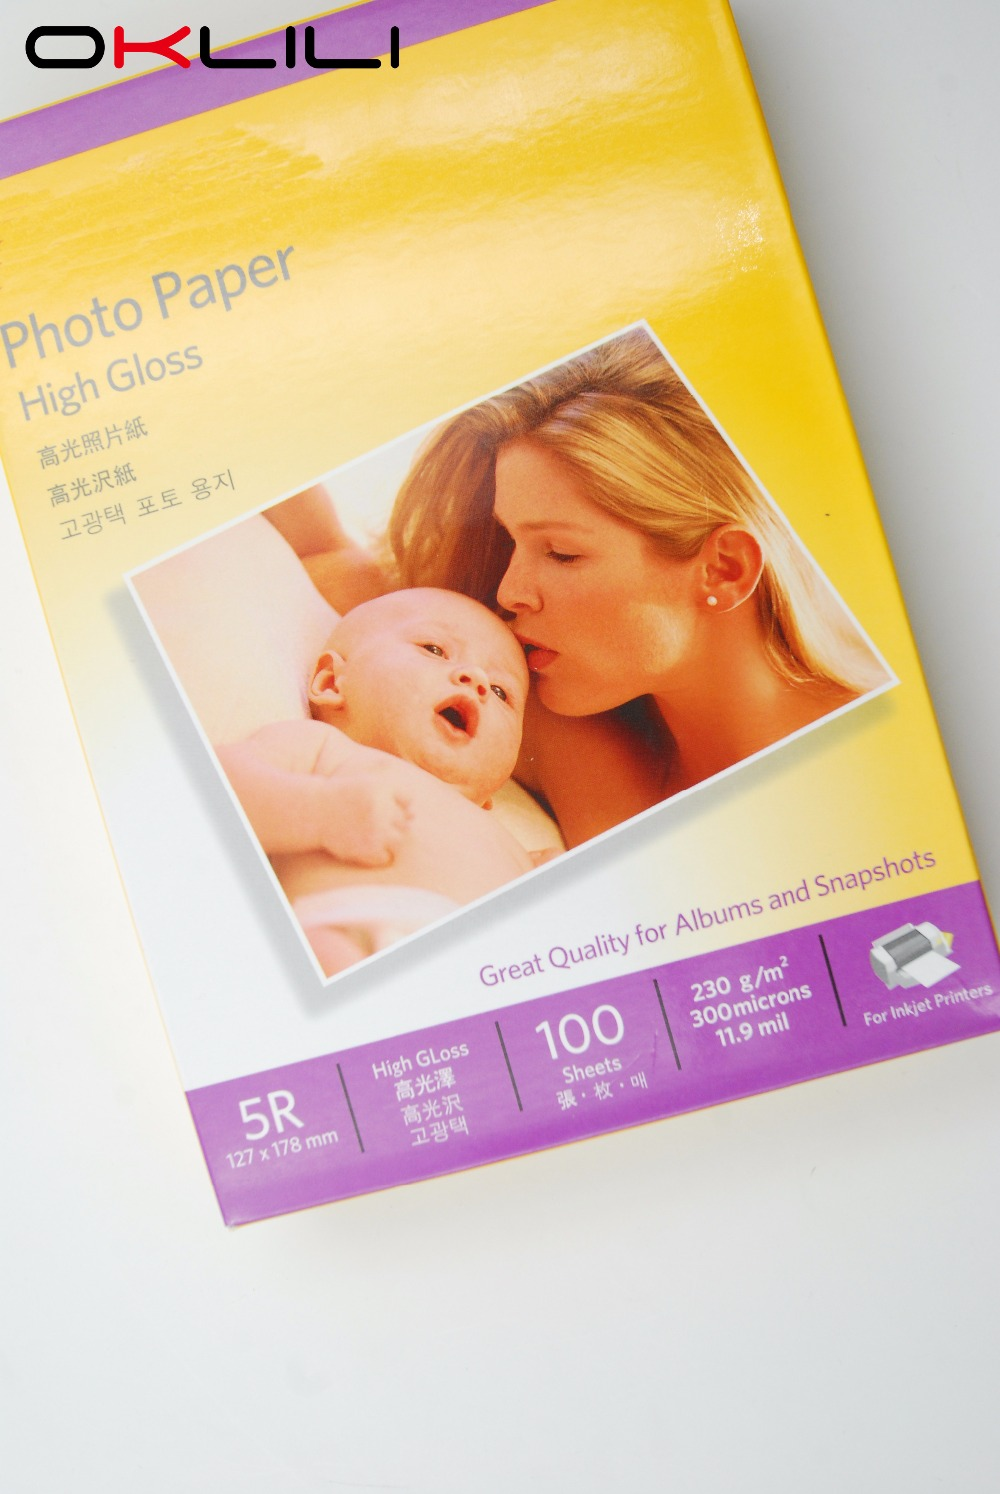 ORIGINAL for Kodak 5R x 100 High Gloss glossy Photo Paper 127 x 178 mm 100 sheets 230g 300 microns 11.9 mil for Inkjet Printer